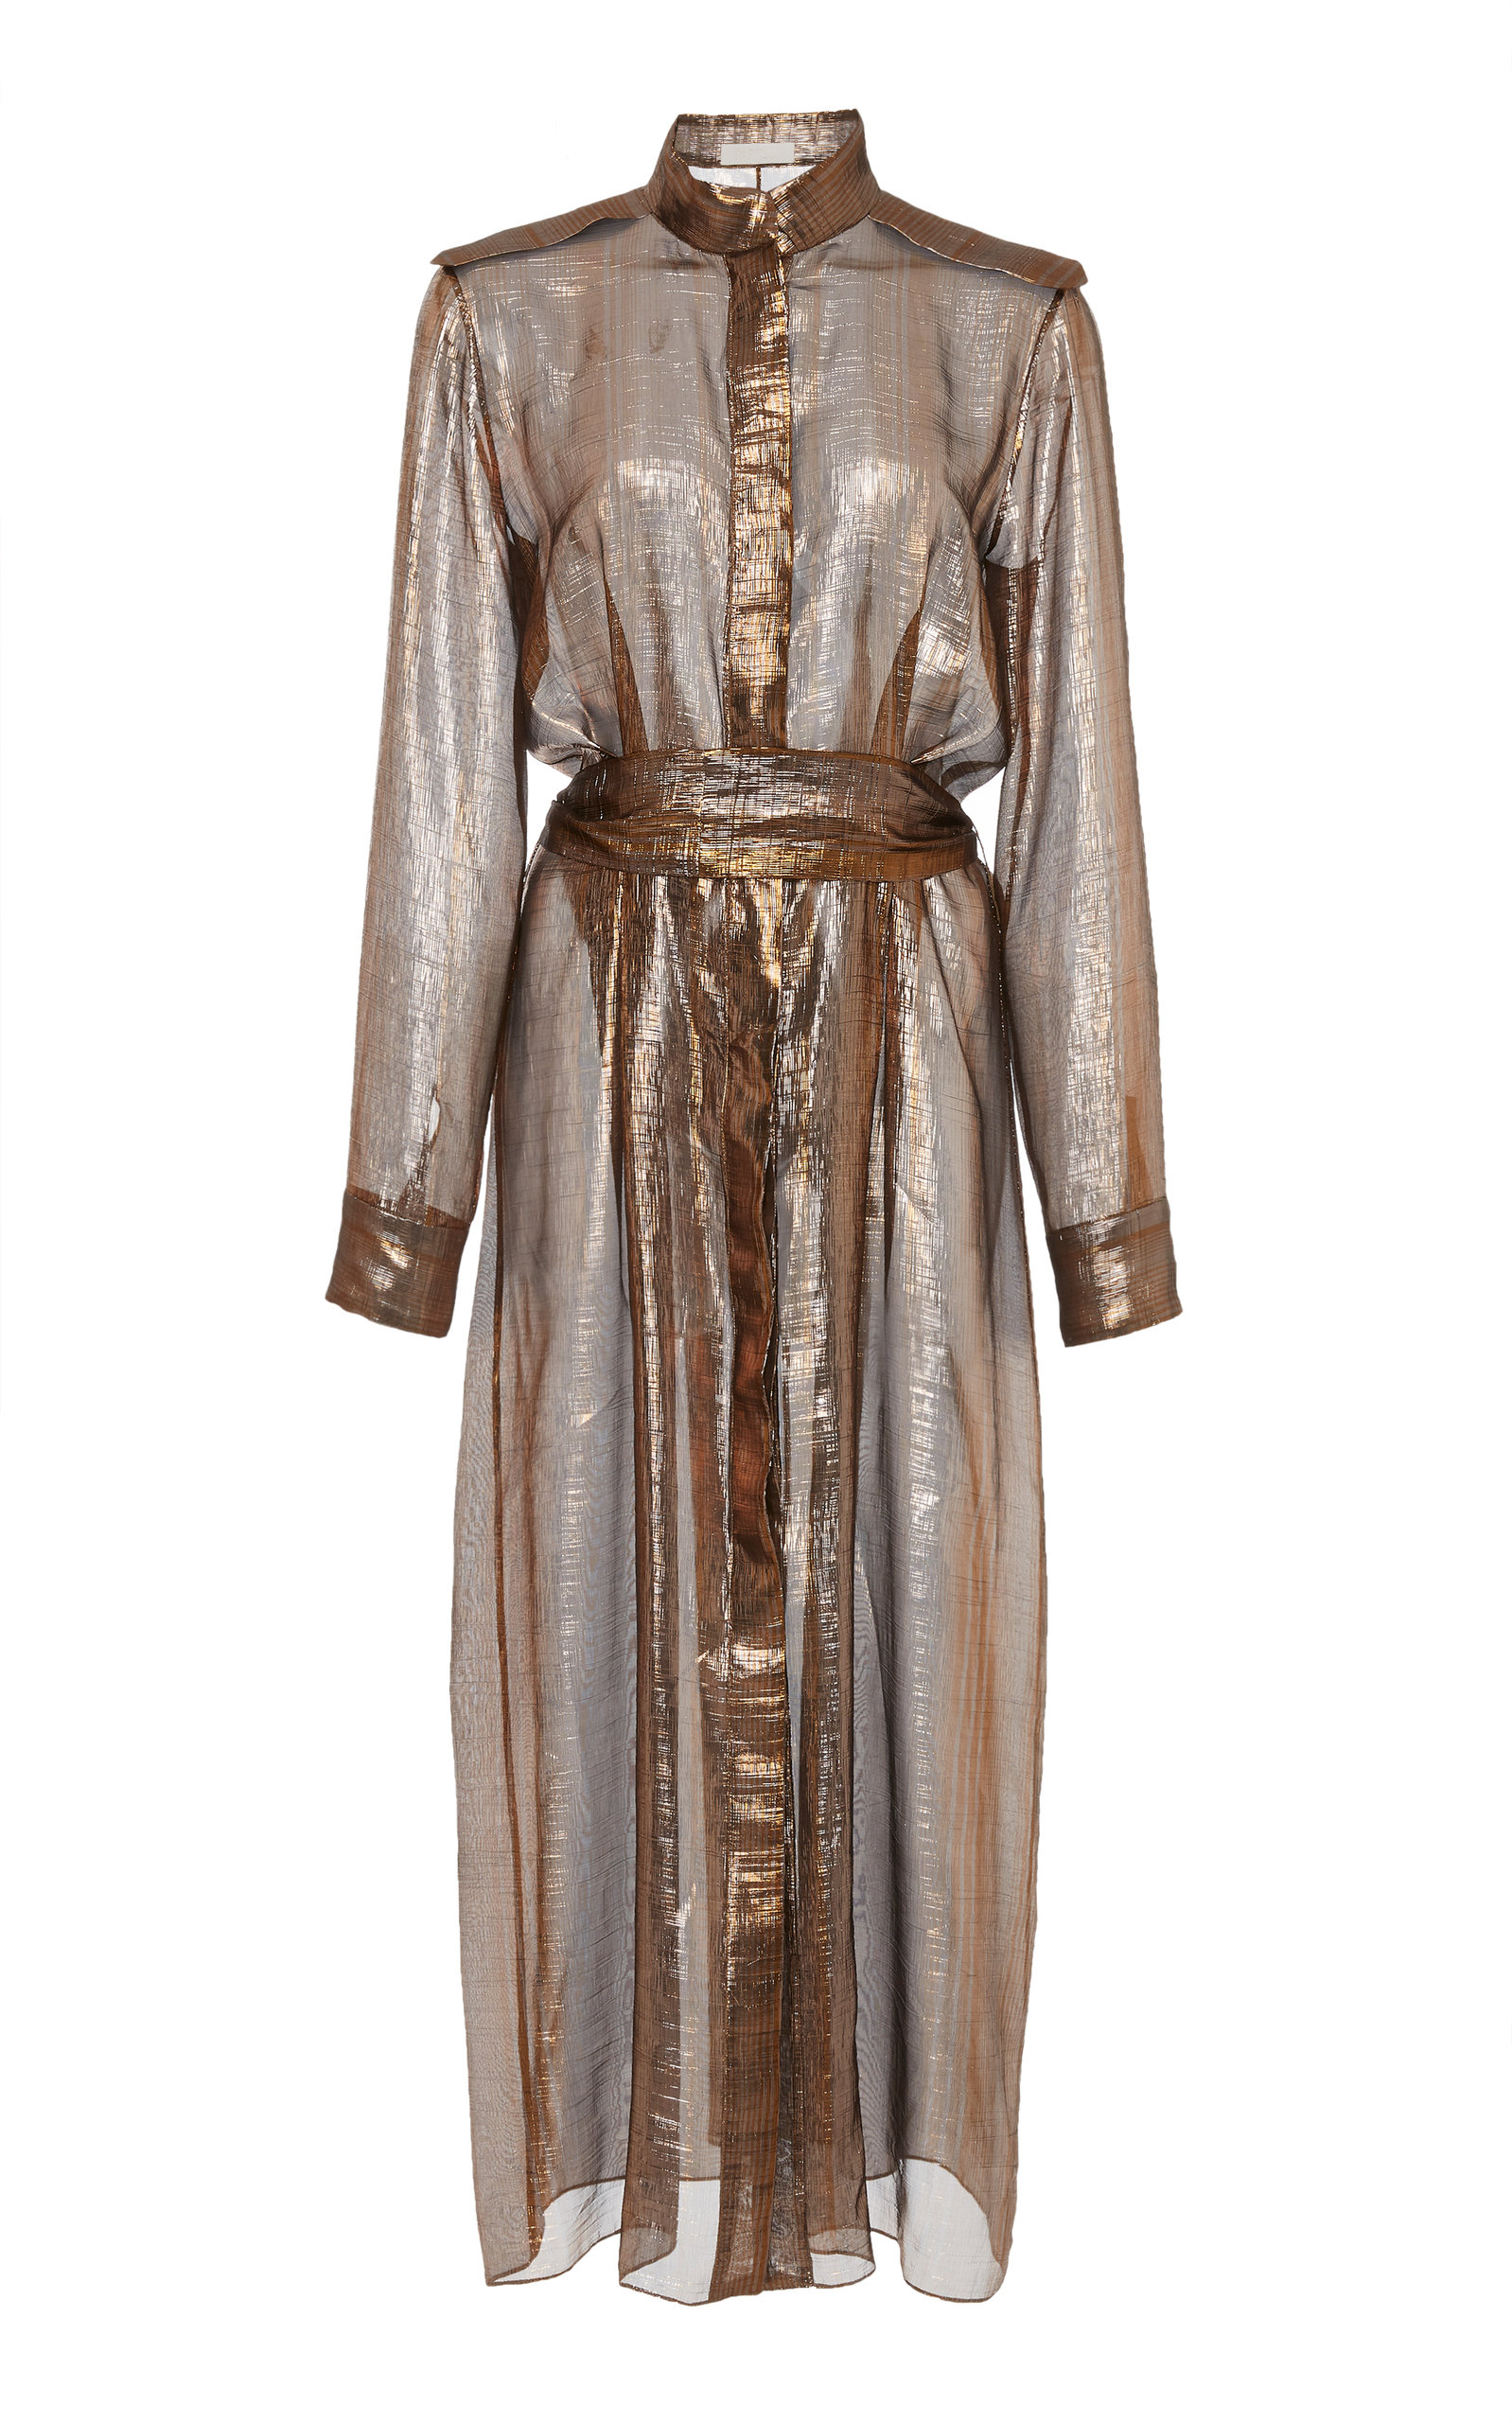 PARTOW BROOKLYN METALLIC SILK BLEND DRESS